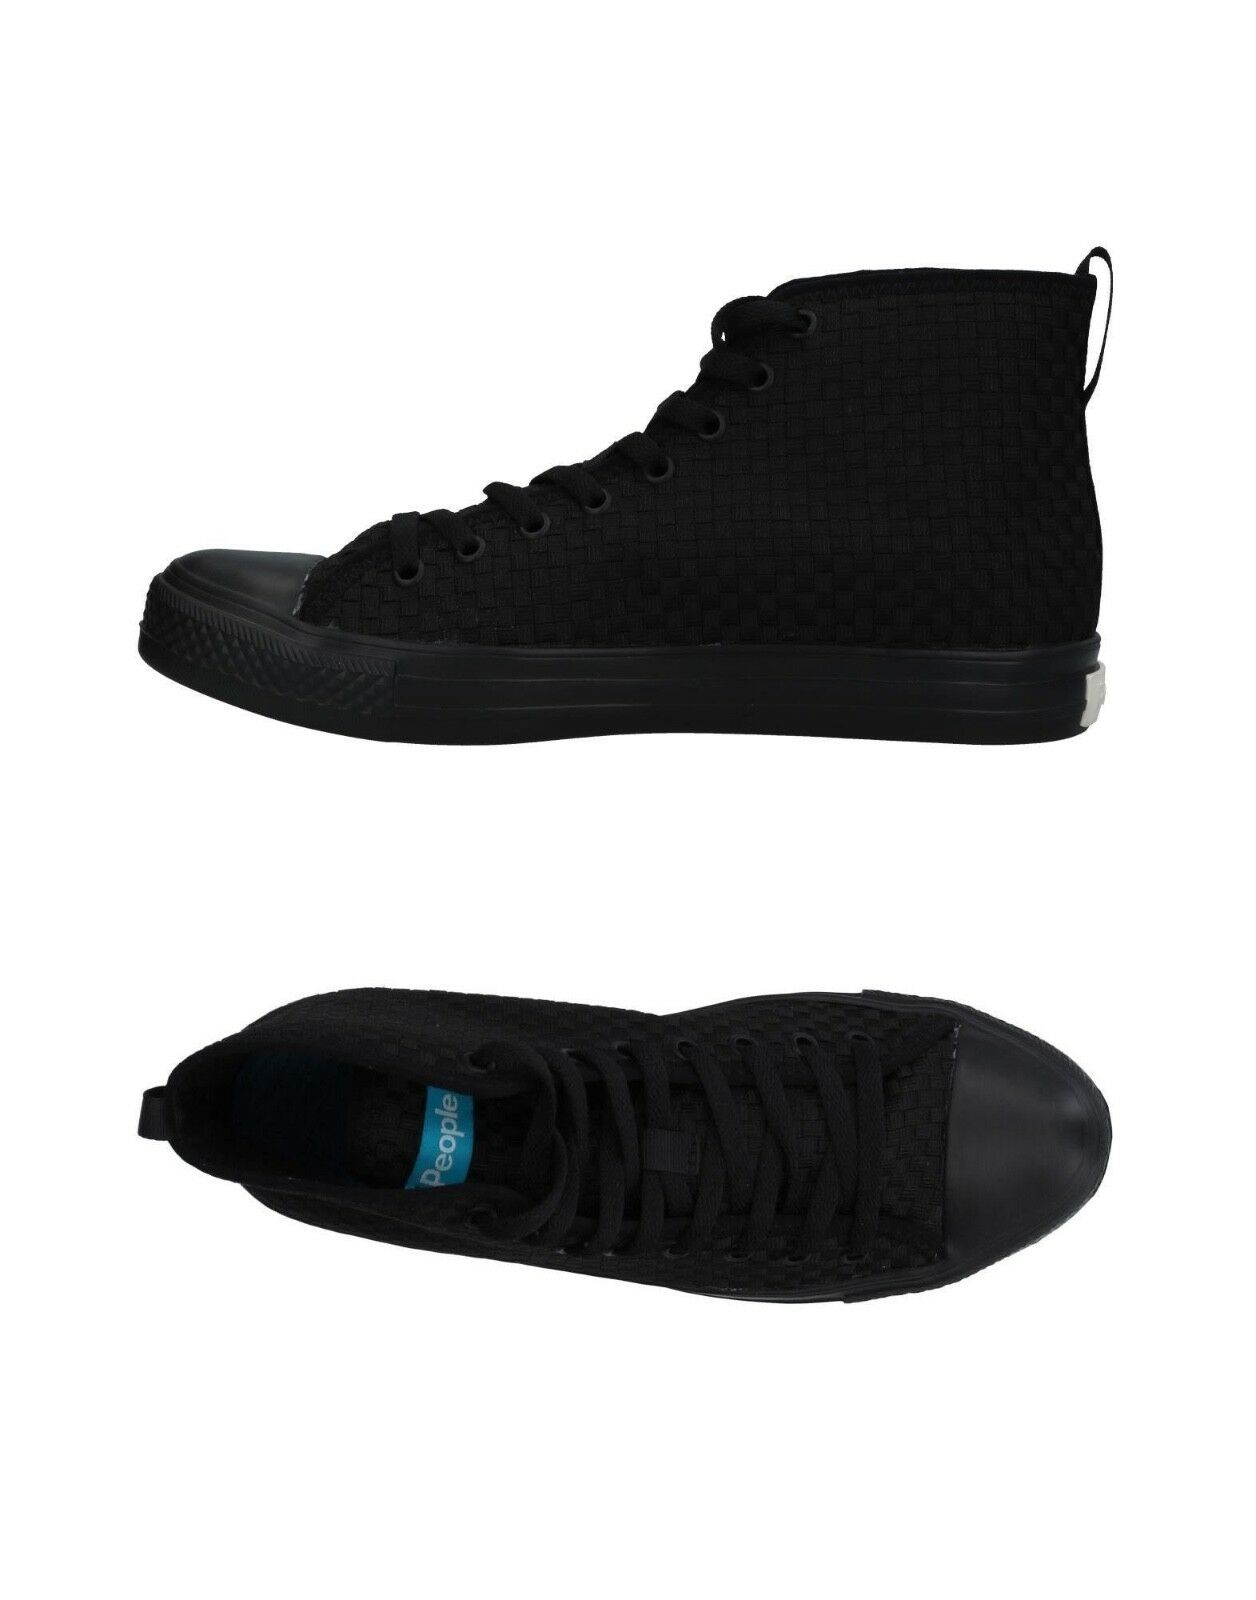 da752f534cc3 Man Woman People Footwear. brand brand brand new. size 8 Outstanding  features At